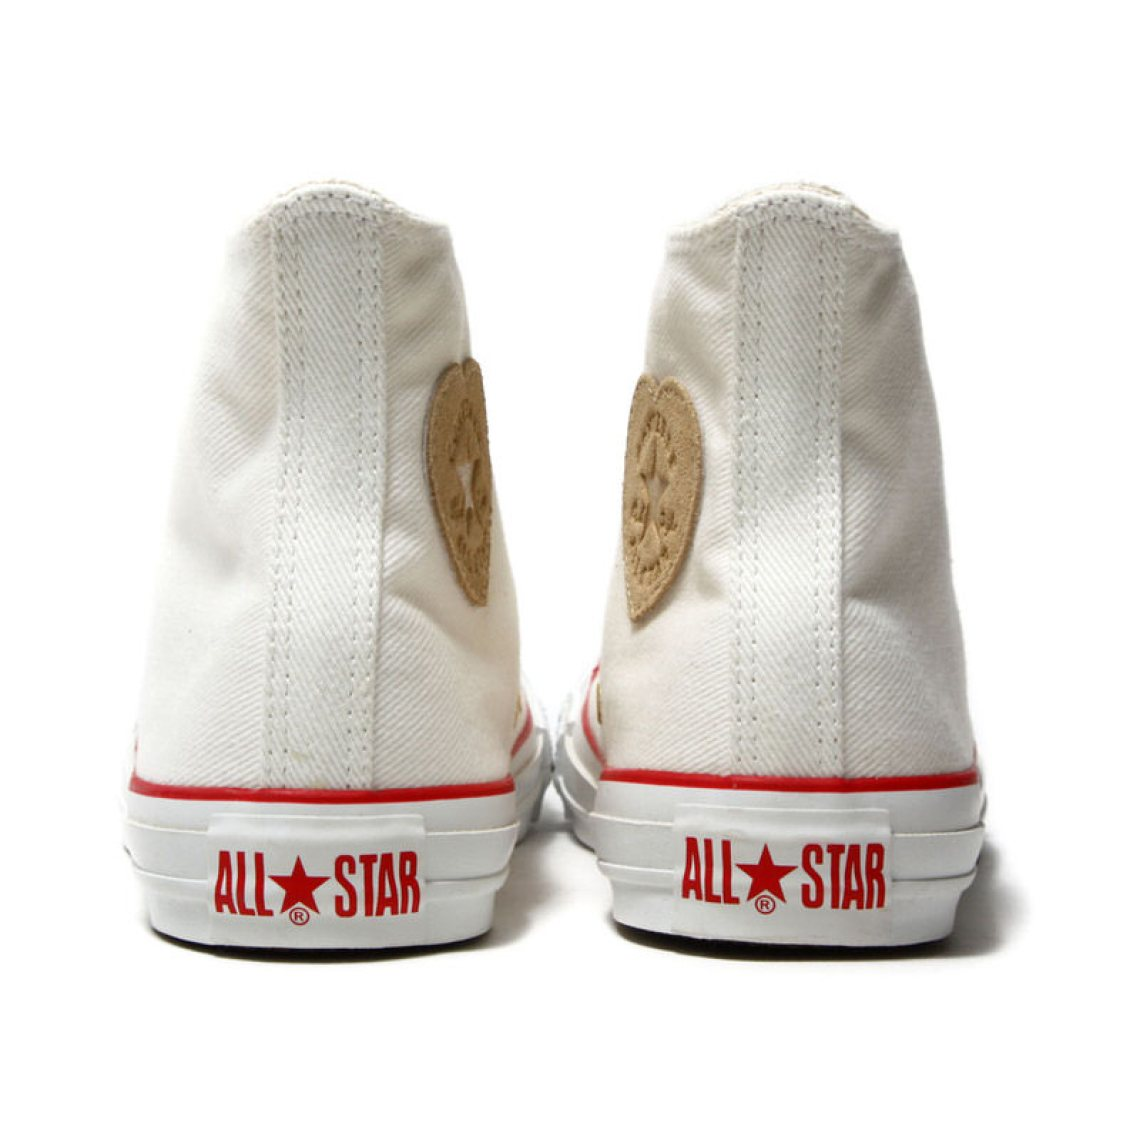 69cb2b6ca2e2 Converse Continues Chuck Taylor 100th Anniversary With New Pack ...